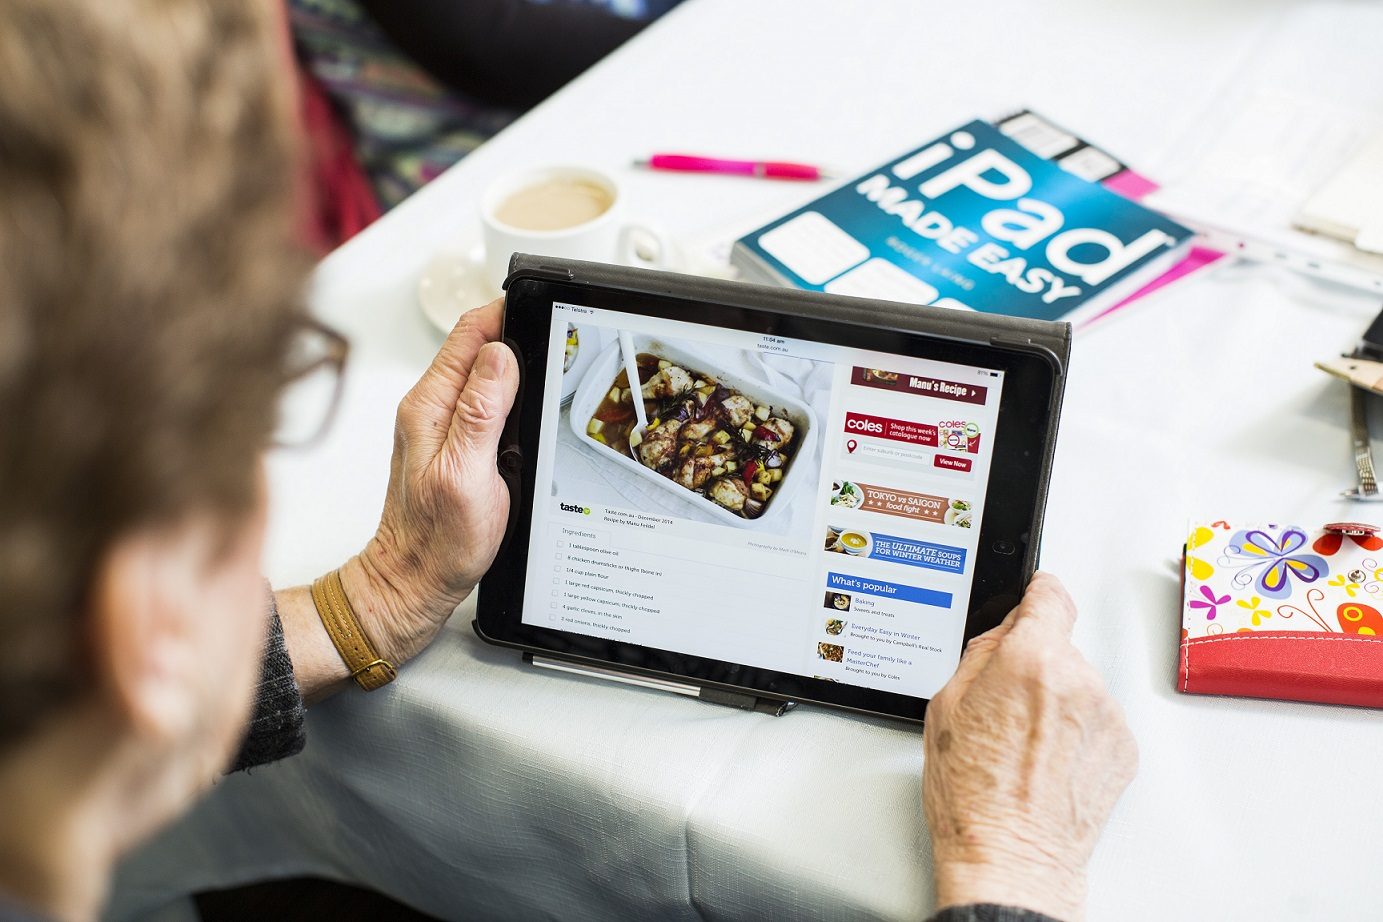 older person using ipad to research recipes